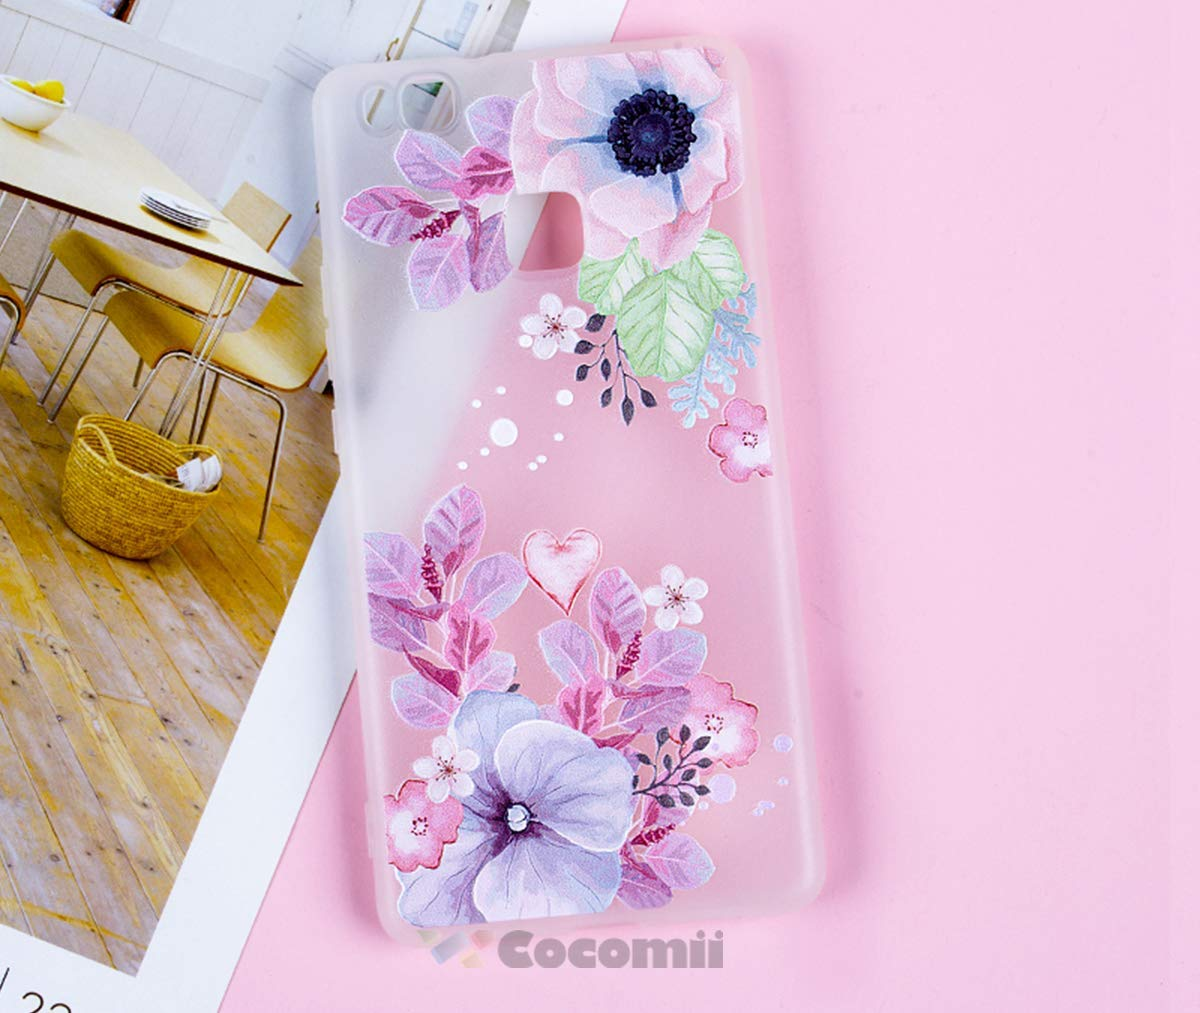 Cocomii 3D Flower Translucent Huawei P9 lite/Honor 8 Smart Case, Slim Thin Matte Soft TPU Silicone Rubber Gel 3D Silicone Floral Bumper Cover for Huawei P9 lite/Honor 8 Smart (Watercolor Flowers)